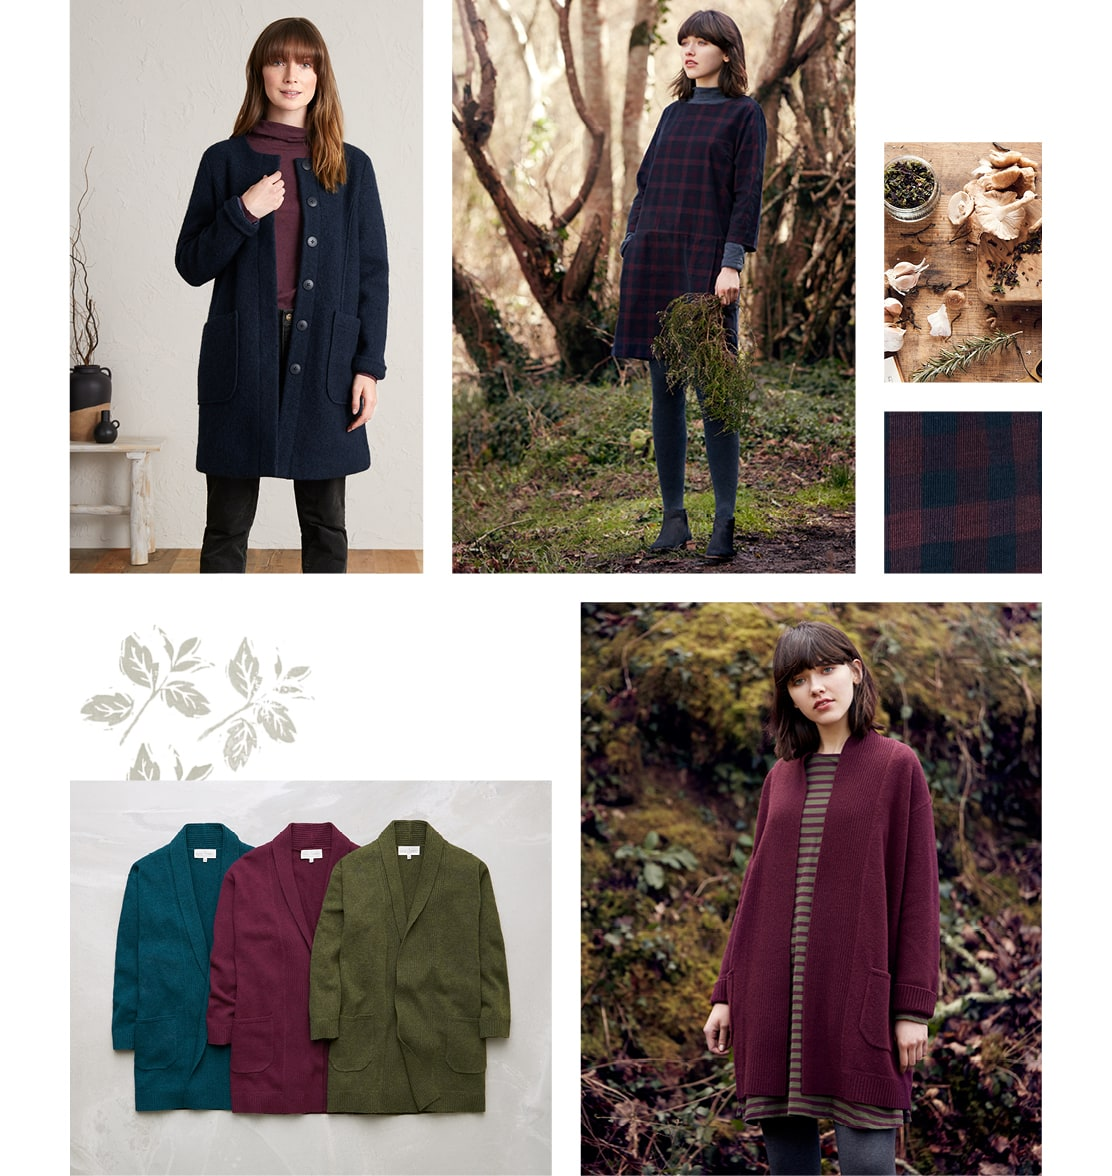 Long cardigans and Knitwear for Autumn Walks